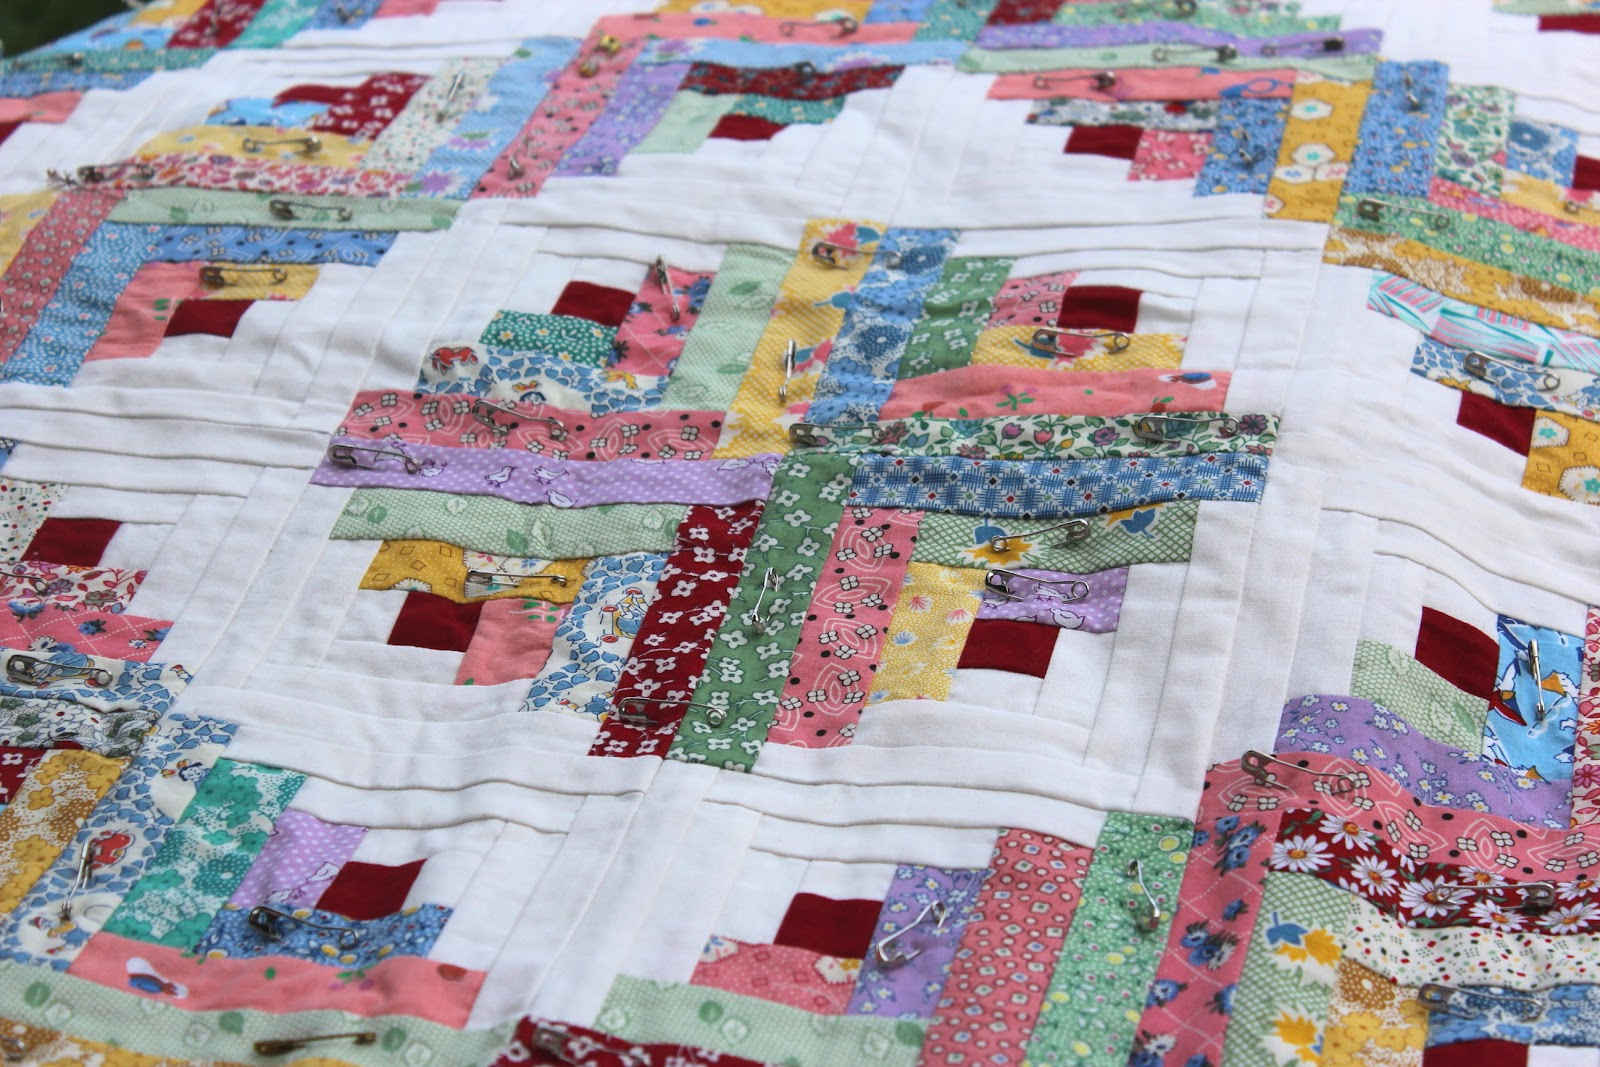 Where Did Log Cabin Patchwork Come From | kashiori.com Wooden Sofa ... : log cabin style quilts - Adamdwight.com